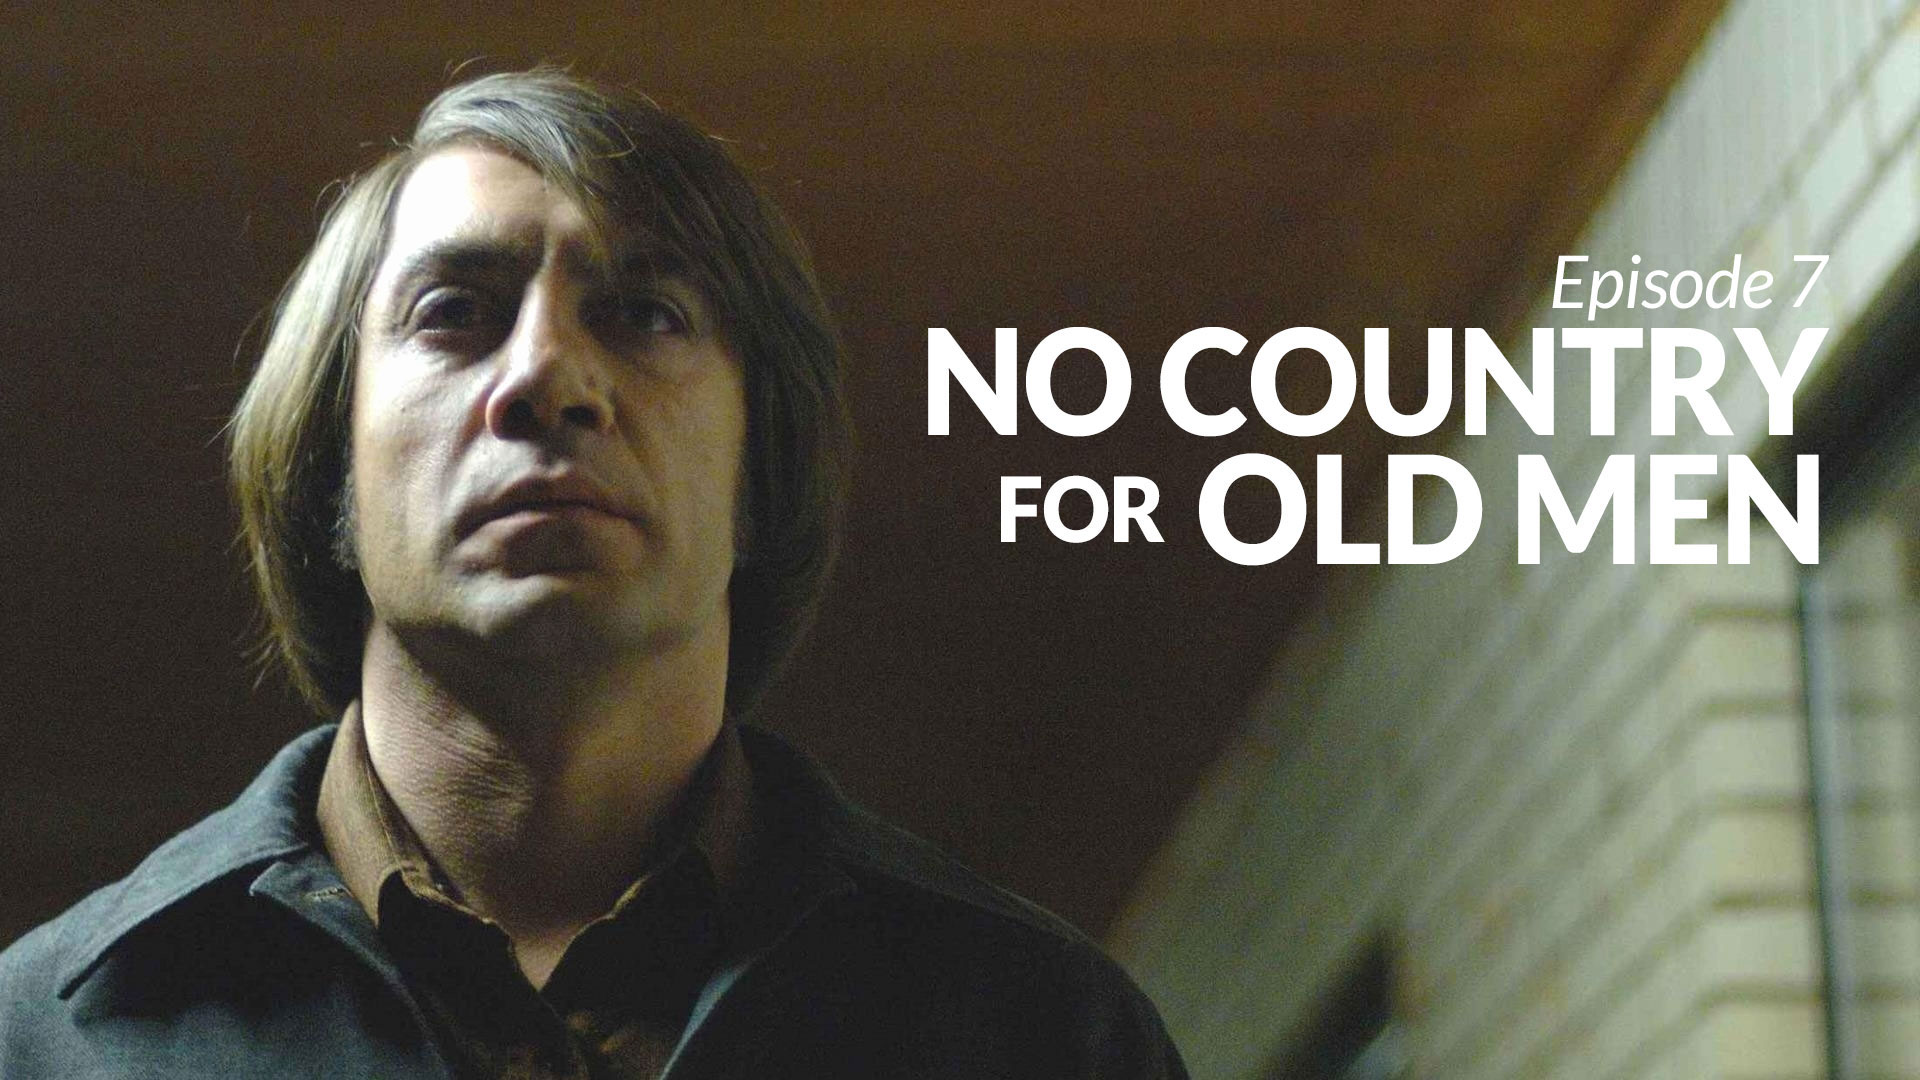 7 Rewatch No Country For Old Men Givemebackmyson Podcast